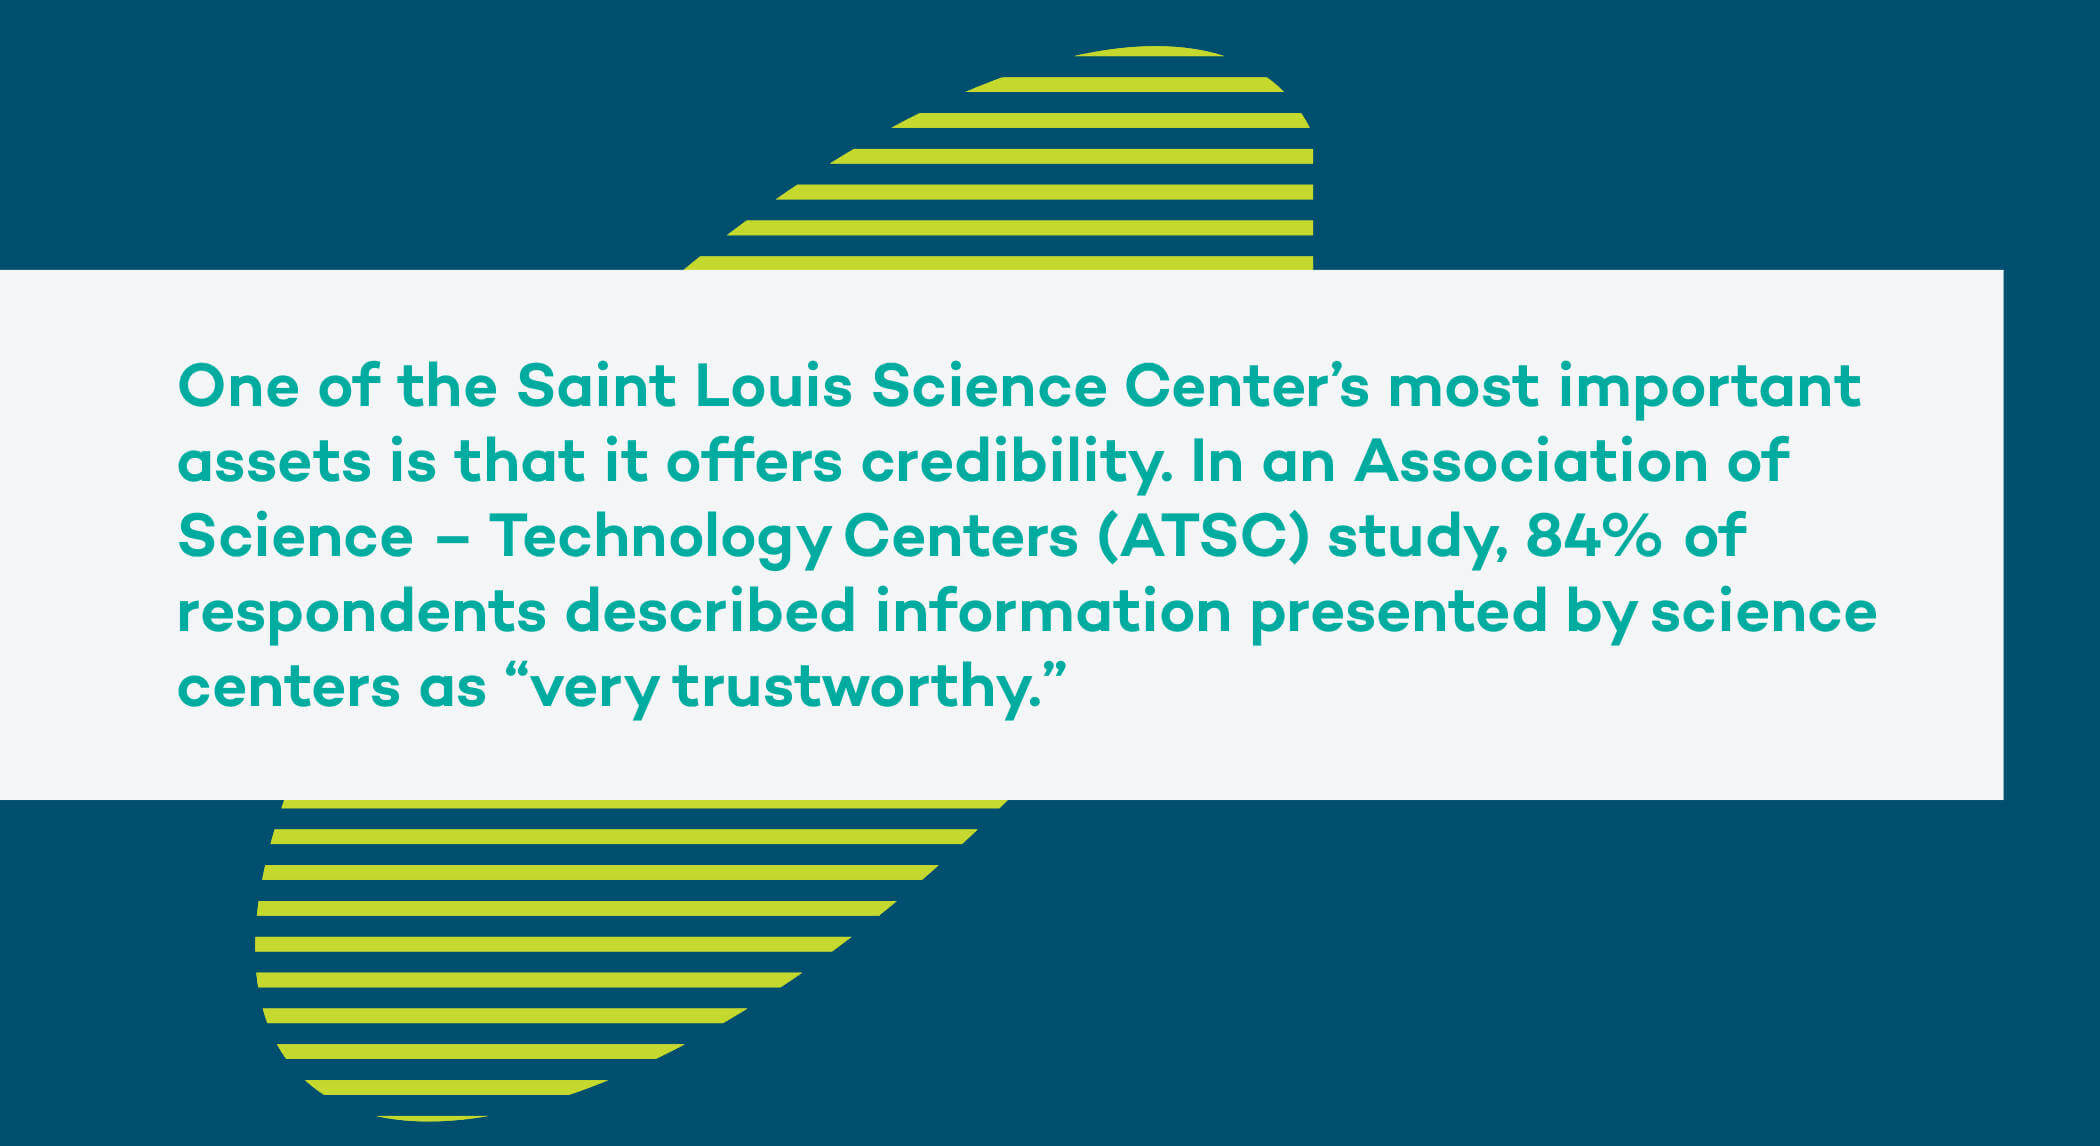 """One of the Saint Louis Science Center's most important assets is that it offers credibility. In an Association of Science – Technology Centers (ATSC) study, 84% of respondents described information presented by science centers as """"very trustworthy."""""""